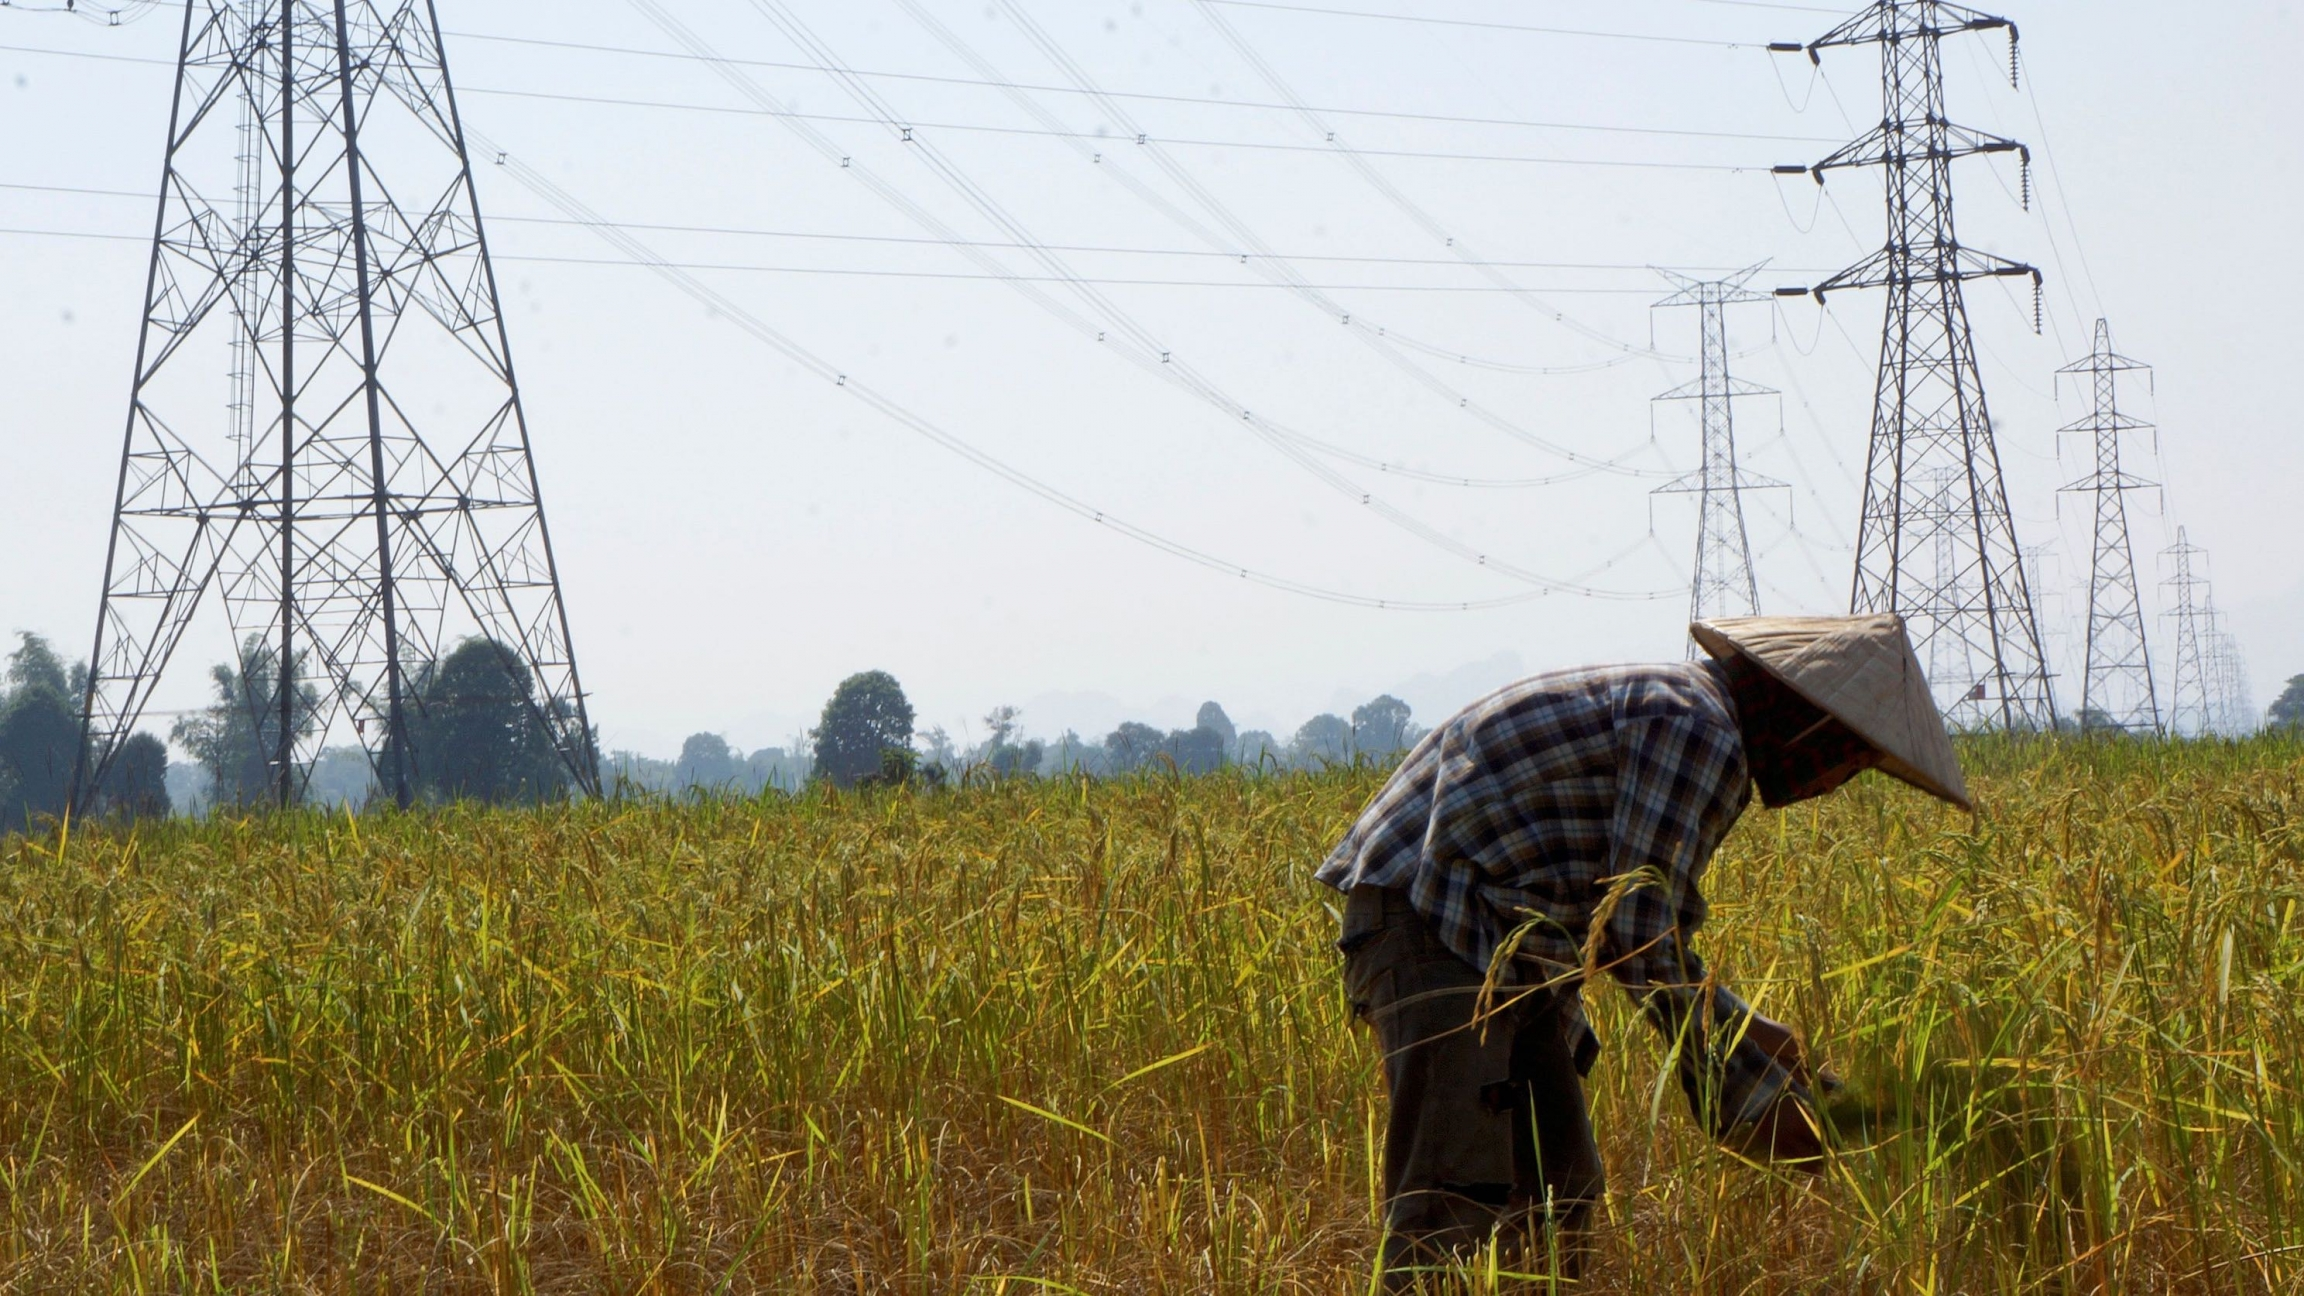 A farmer works in a paddy field under the power lines near Nam Theun 2 dam in Khammouane province in Laos, Oct. 28, 2013.